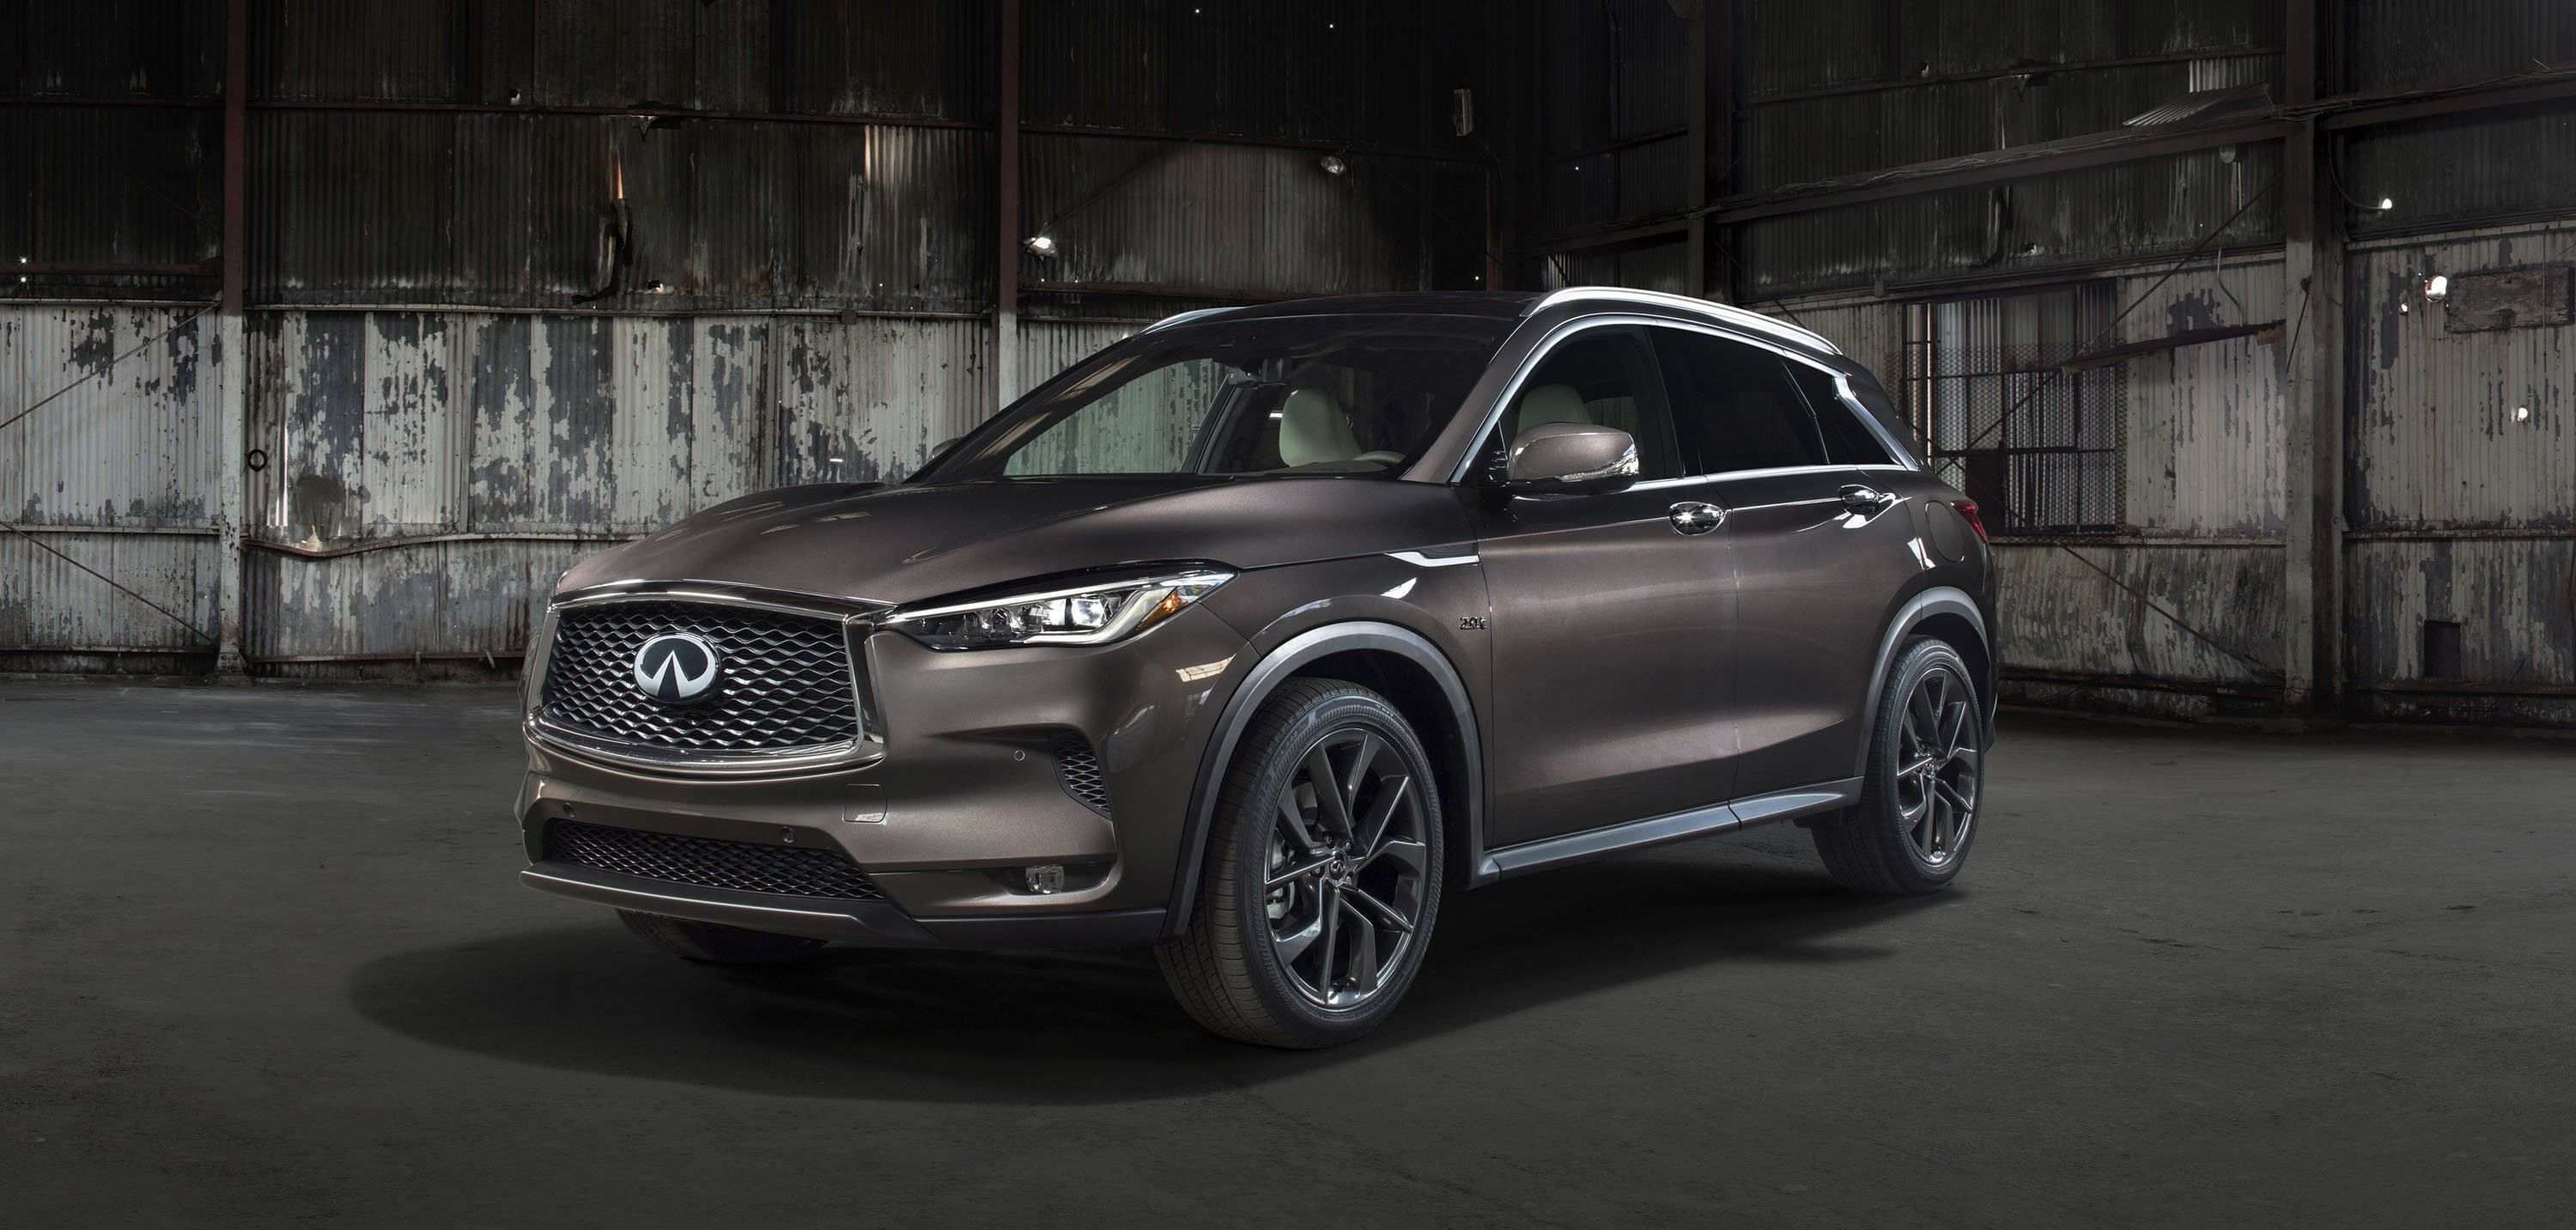 83 All New 2019 Infiniti G35 Review Redesign and Concept for 2019 Infiniti G35 Review